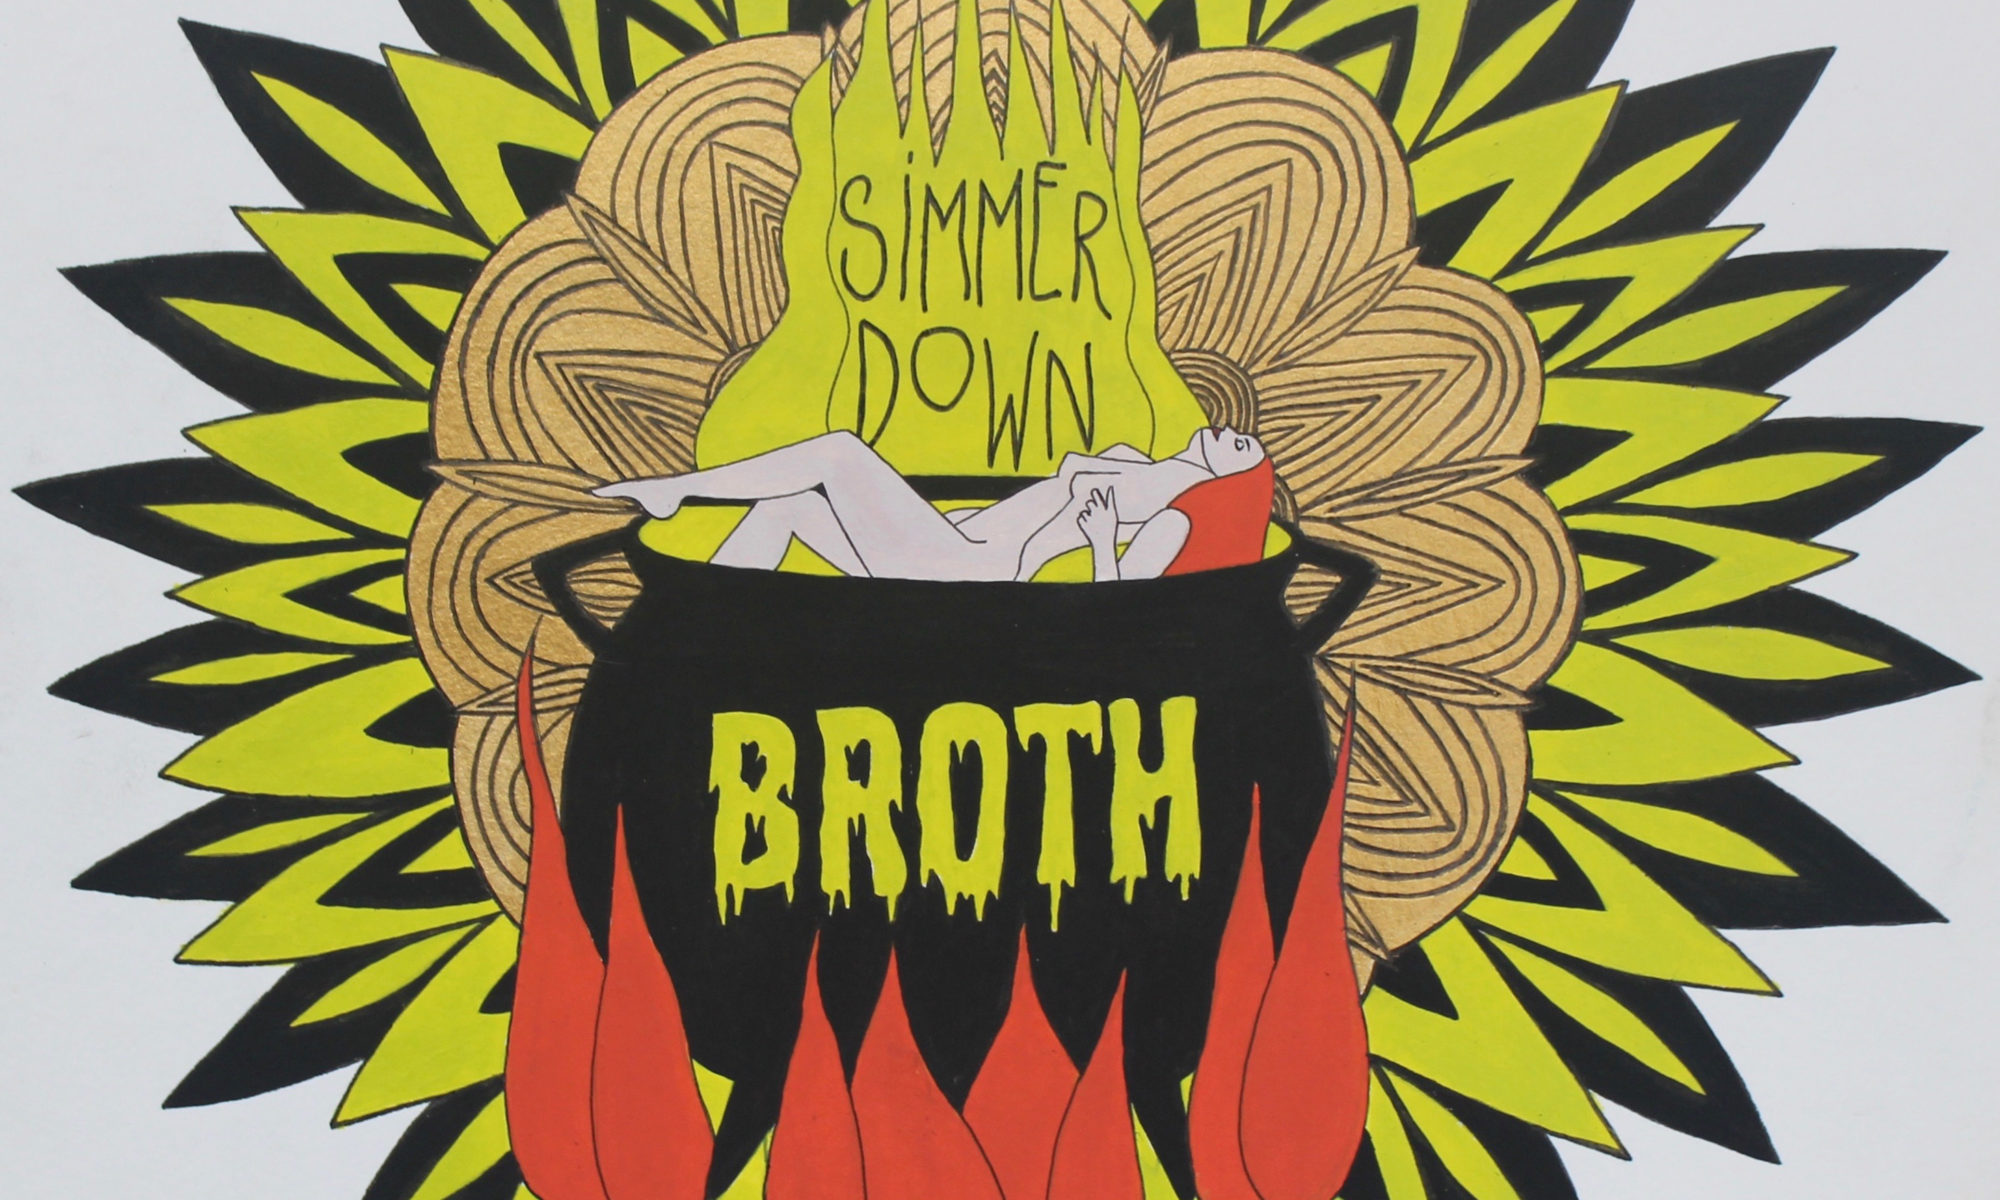 Broth | Simmer Down | 3hive.com